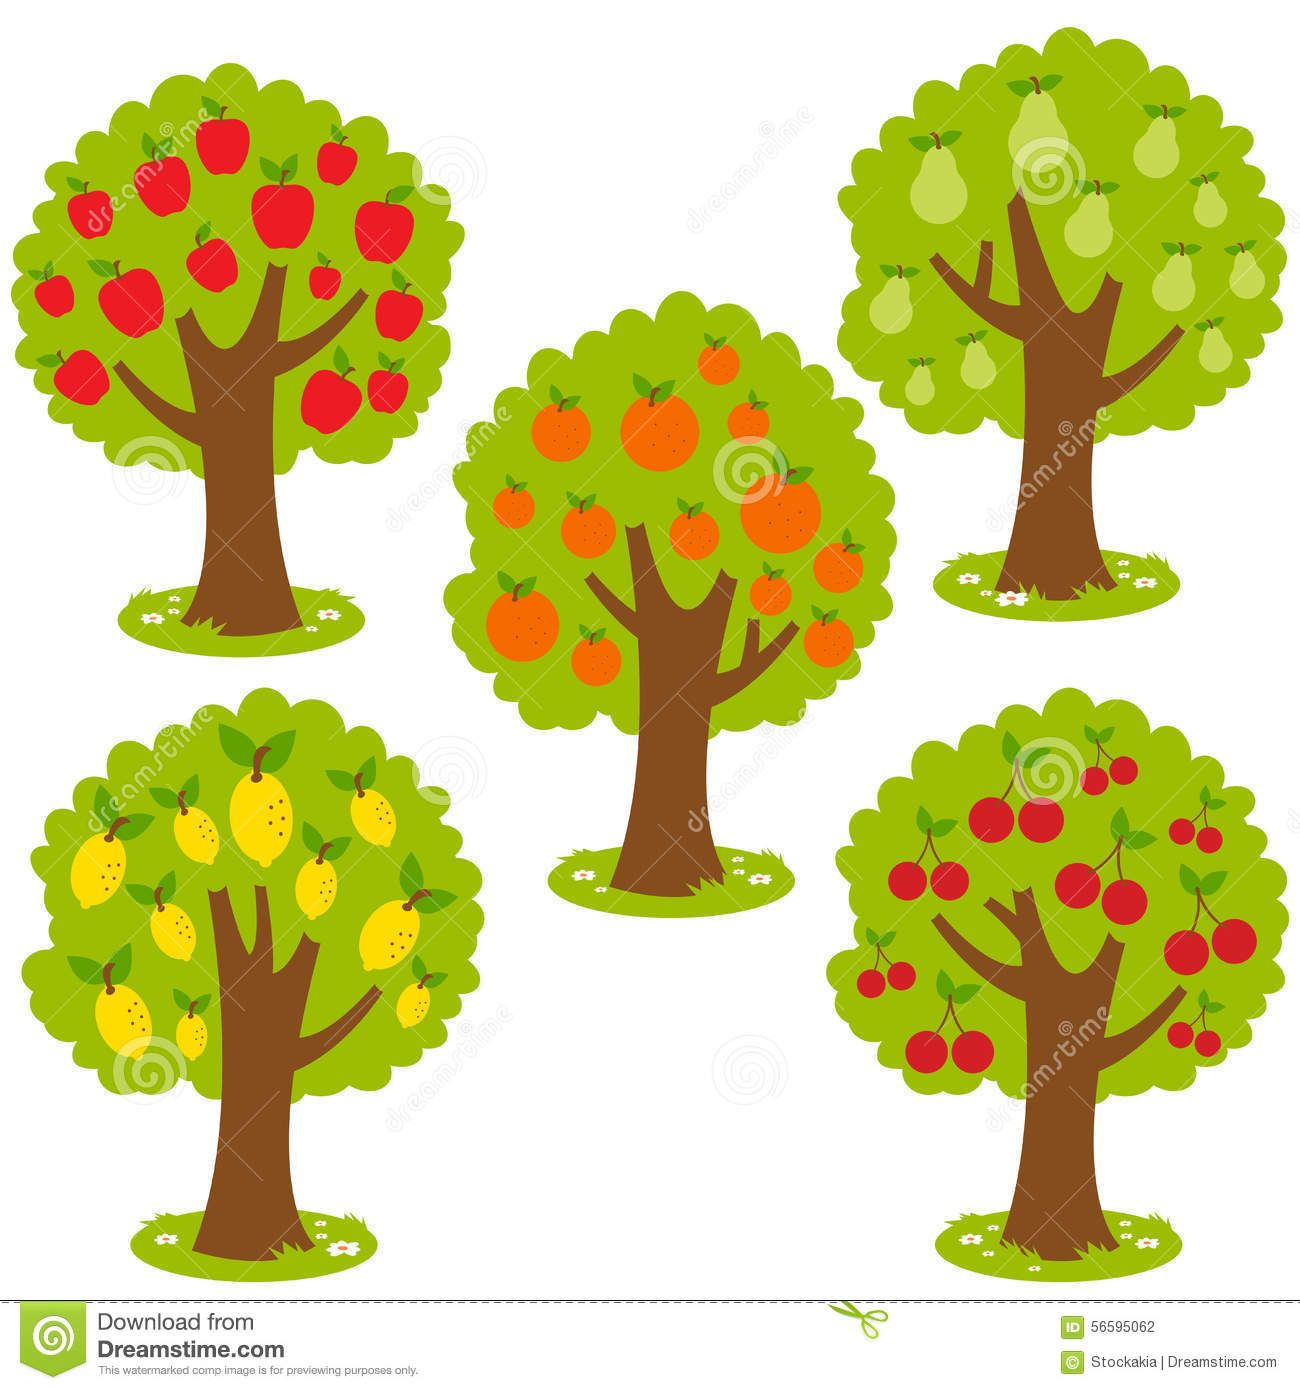 Red apples with seeds and tree growing diagram - Download Free Vectors,  Clipart Graphics & Vector Art